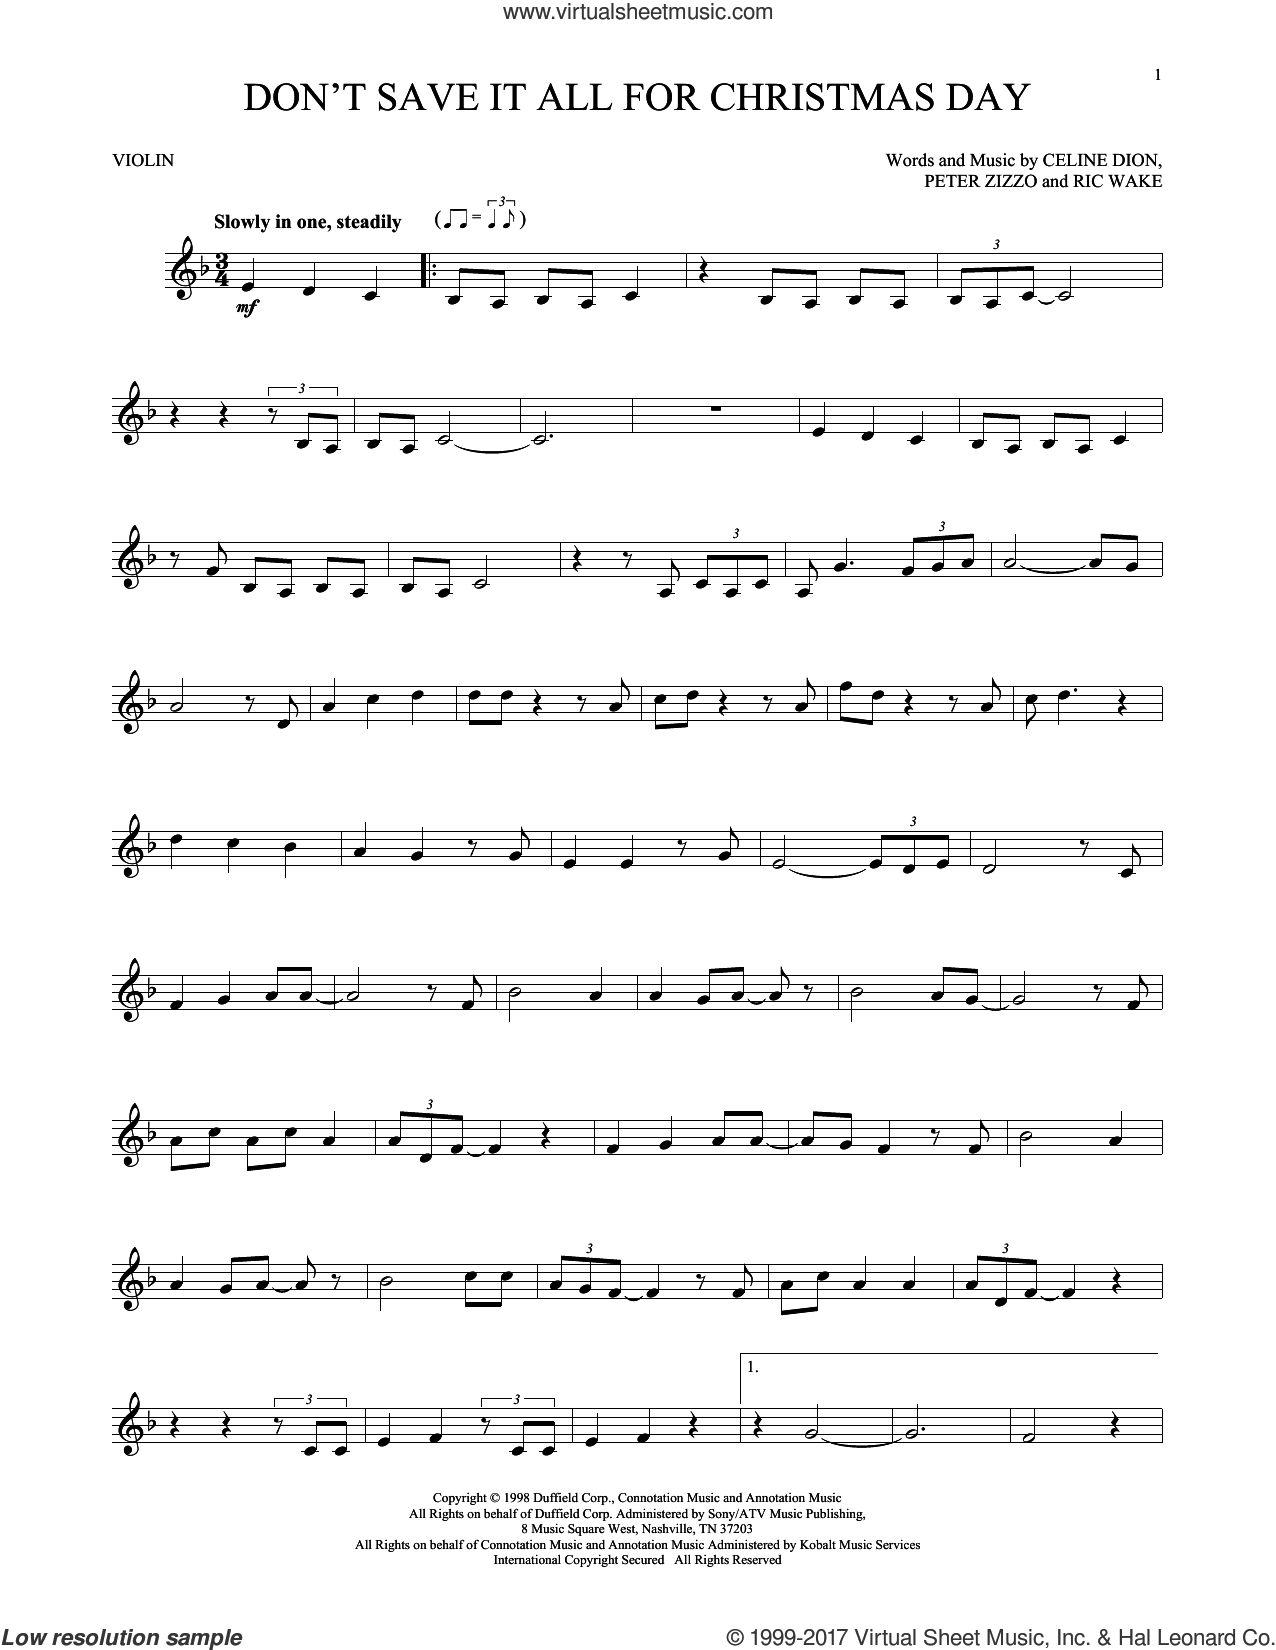 Don't Save It All For Christmas Day sheet music for violin solo by Celine Dion, Avalon, Peter Zizzo and Ric Wake, intermediate. Score Image Preview.